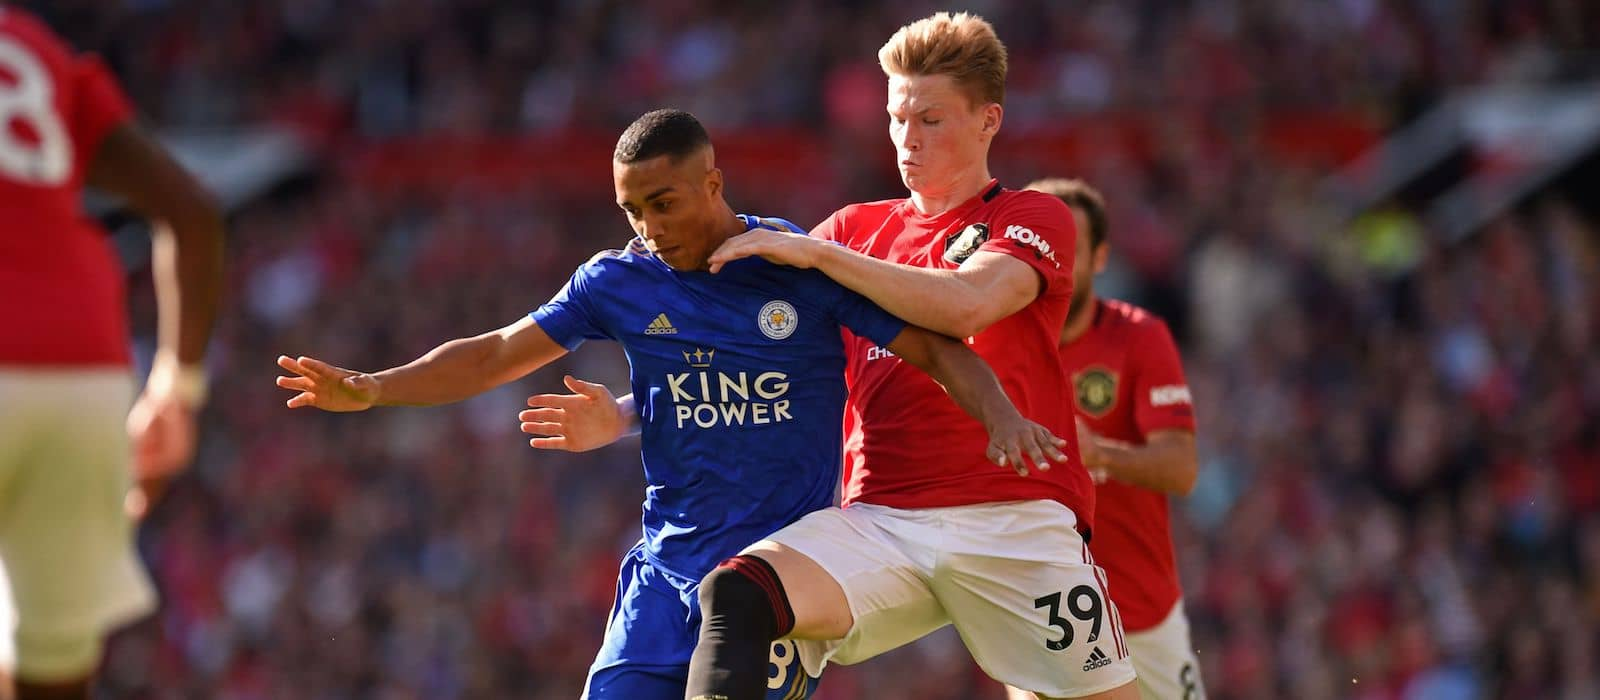 Ole Gunnar Solskjaer labels Scott McTominay a leader after Leicester show